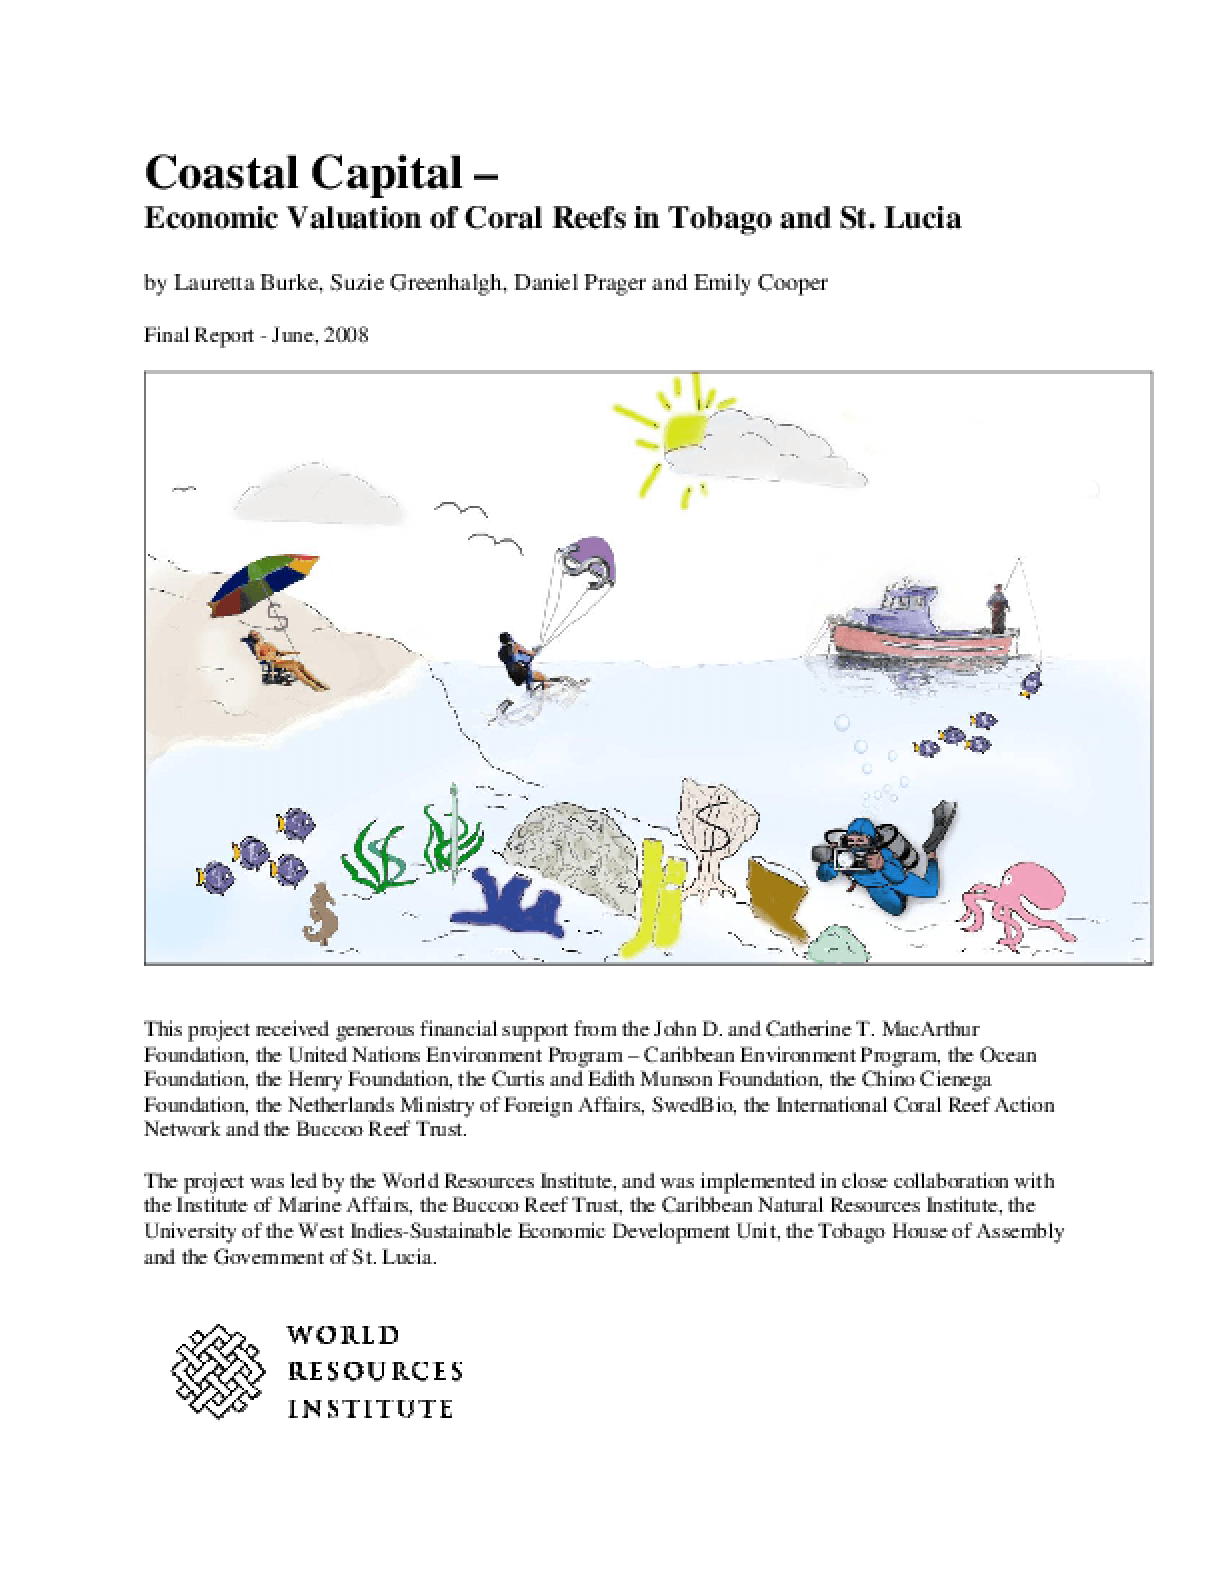 Coastal Capital -- Economic Valuation of Coral Reefs in Tobago and St. Lucia